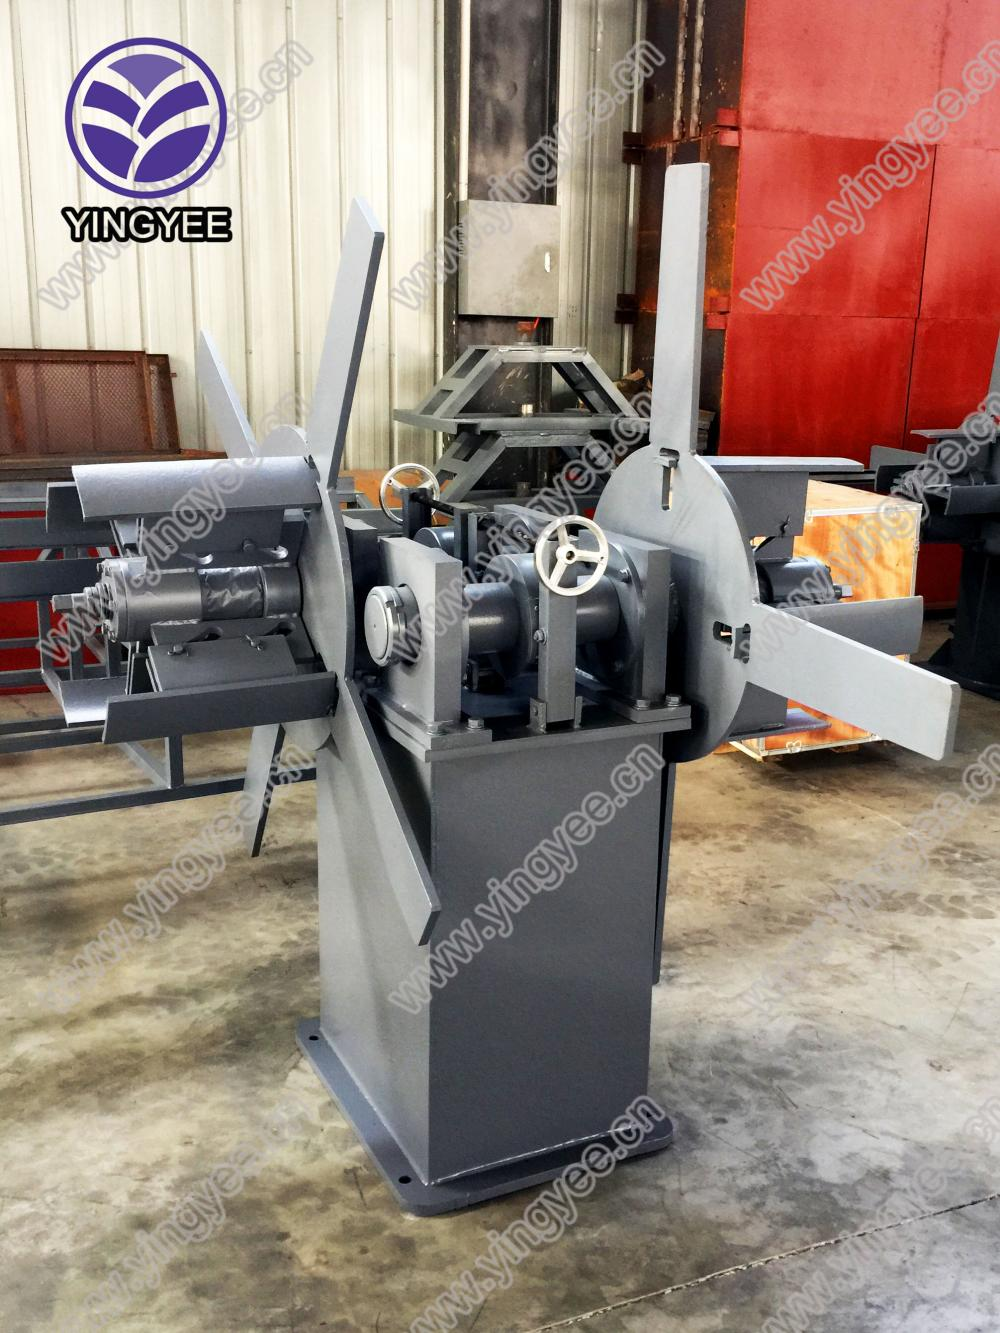 Double Out Machine From Yingyee011